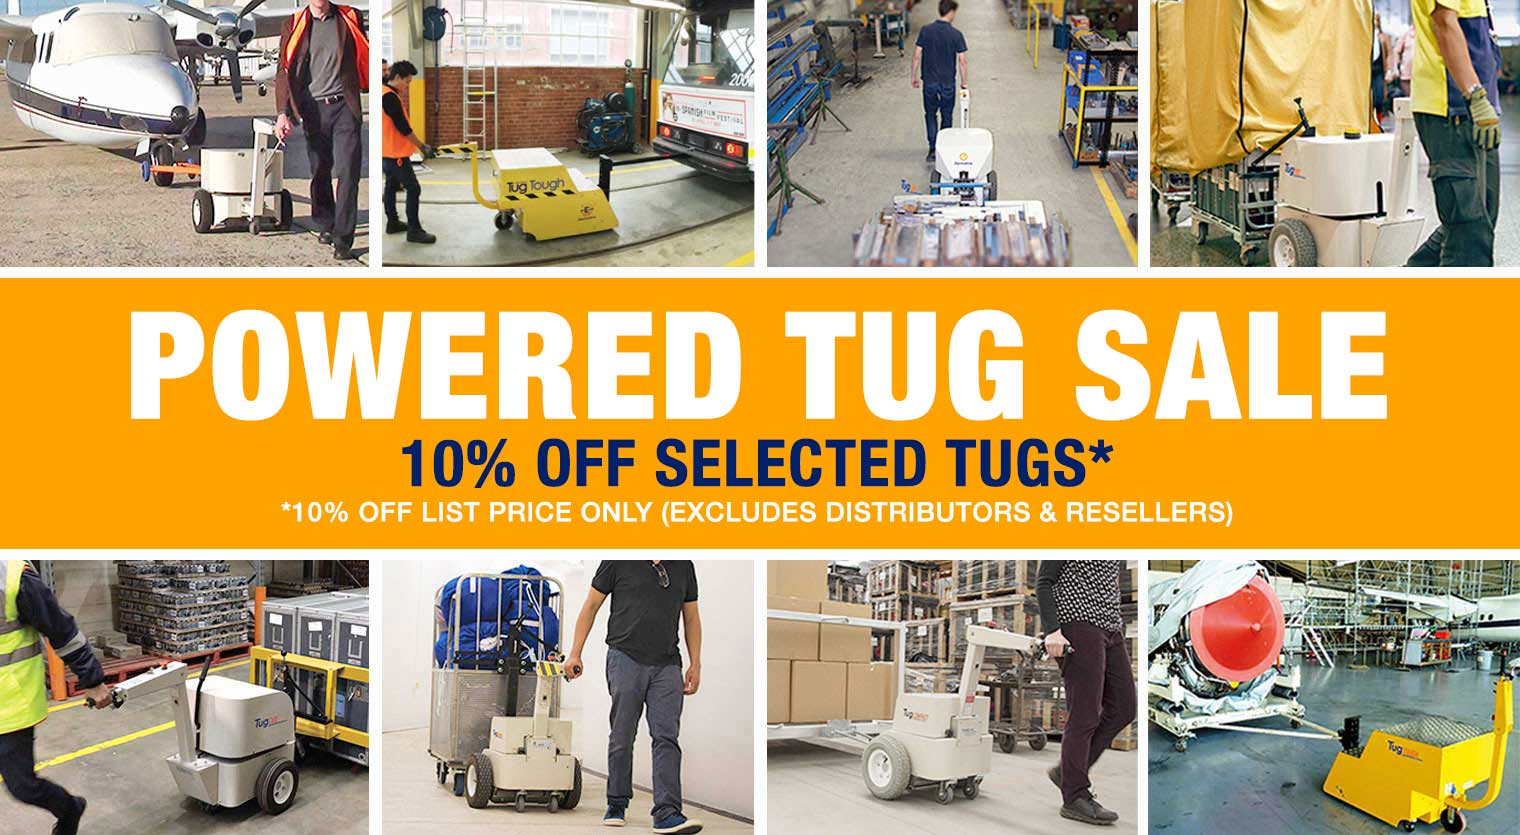 November Powered Tug Sale